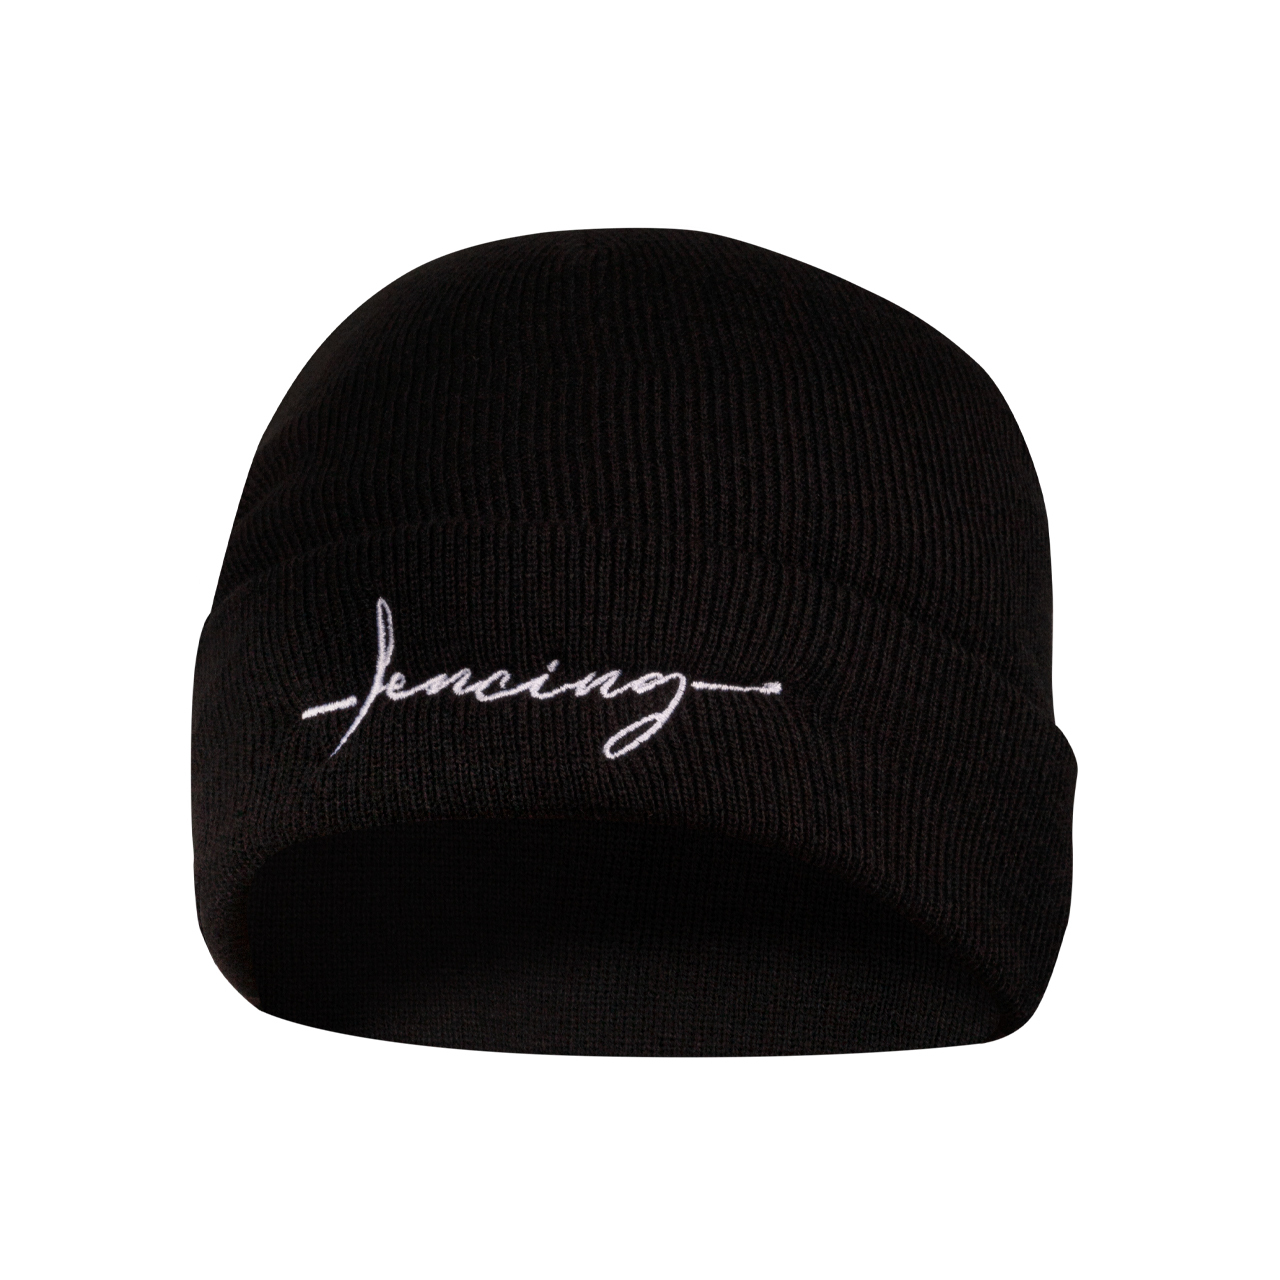 "beanie with ""Fencing"" embroidery"